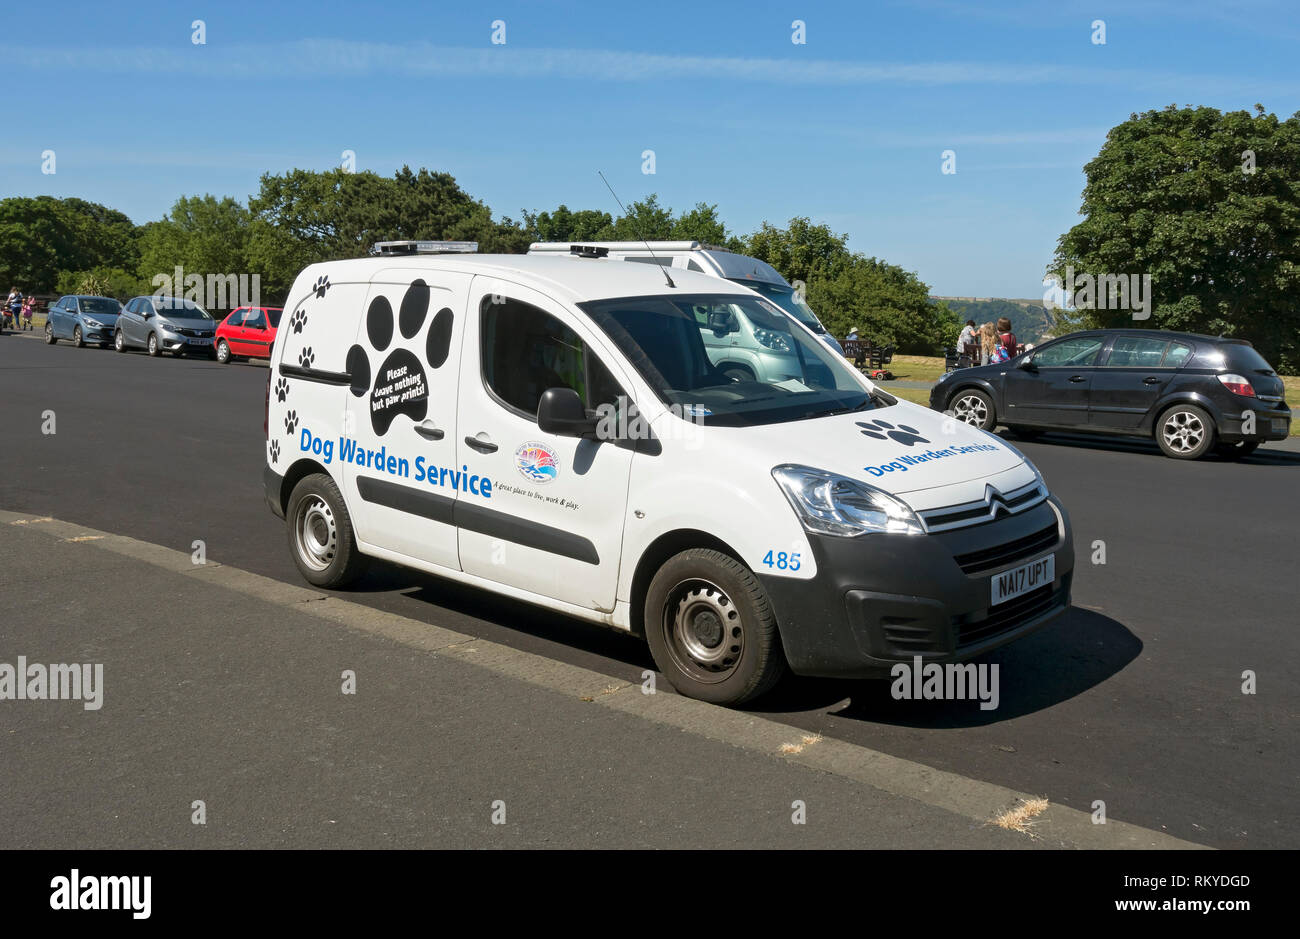 Stray Vehicle Stock Photos & Stray Vehicle Stock Images - Alamy